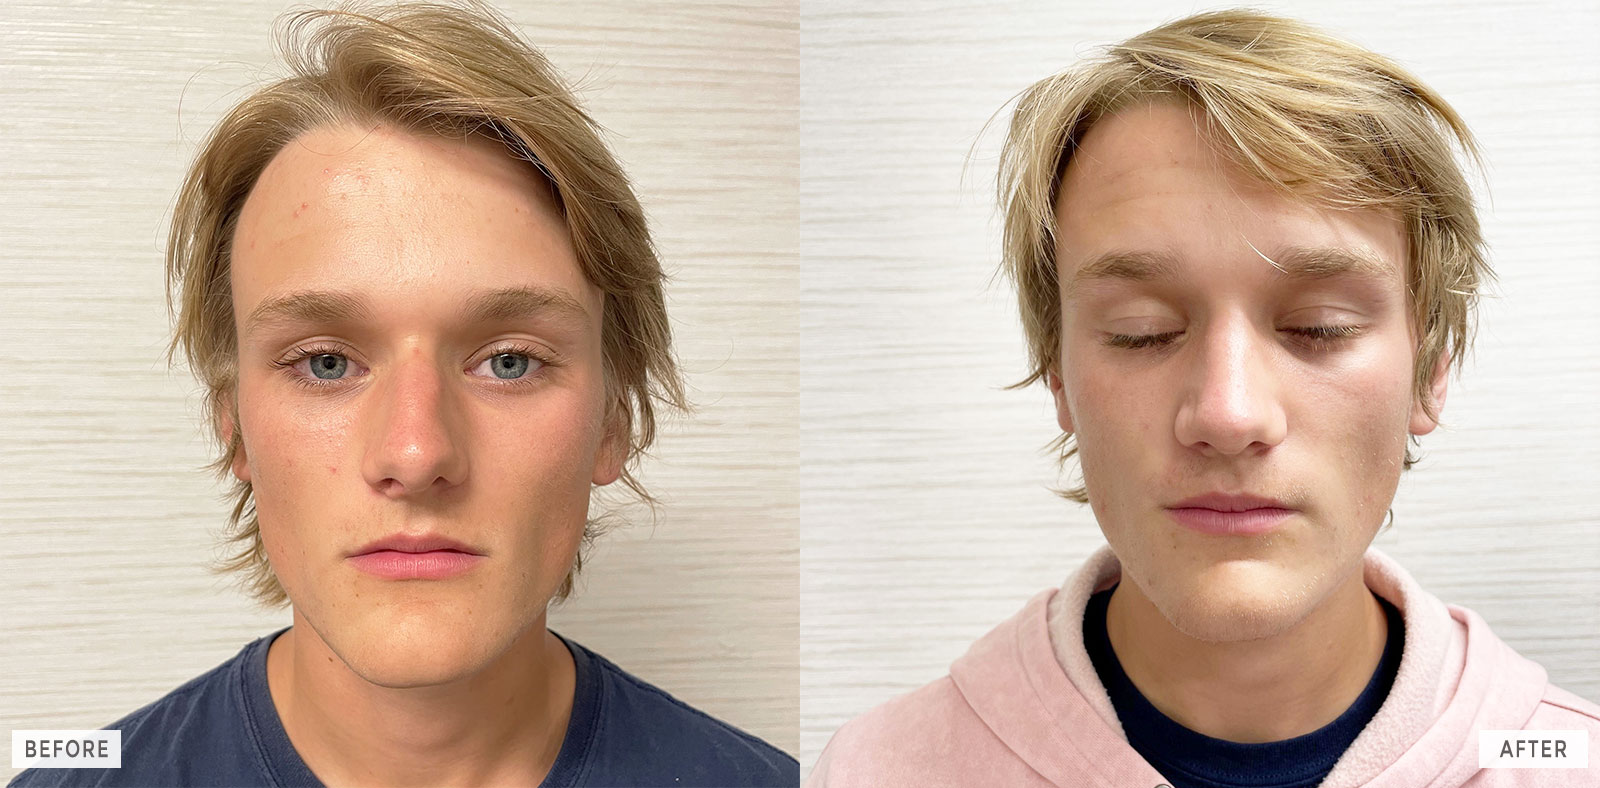 Rhinoplasty Before and After Images - BergerHenry ENT Philadelphia